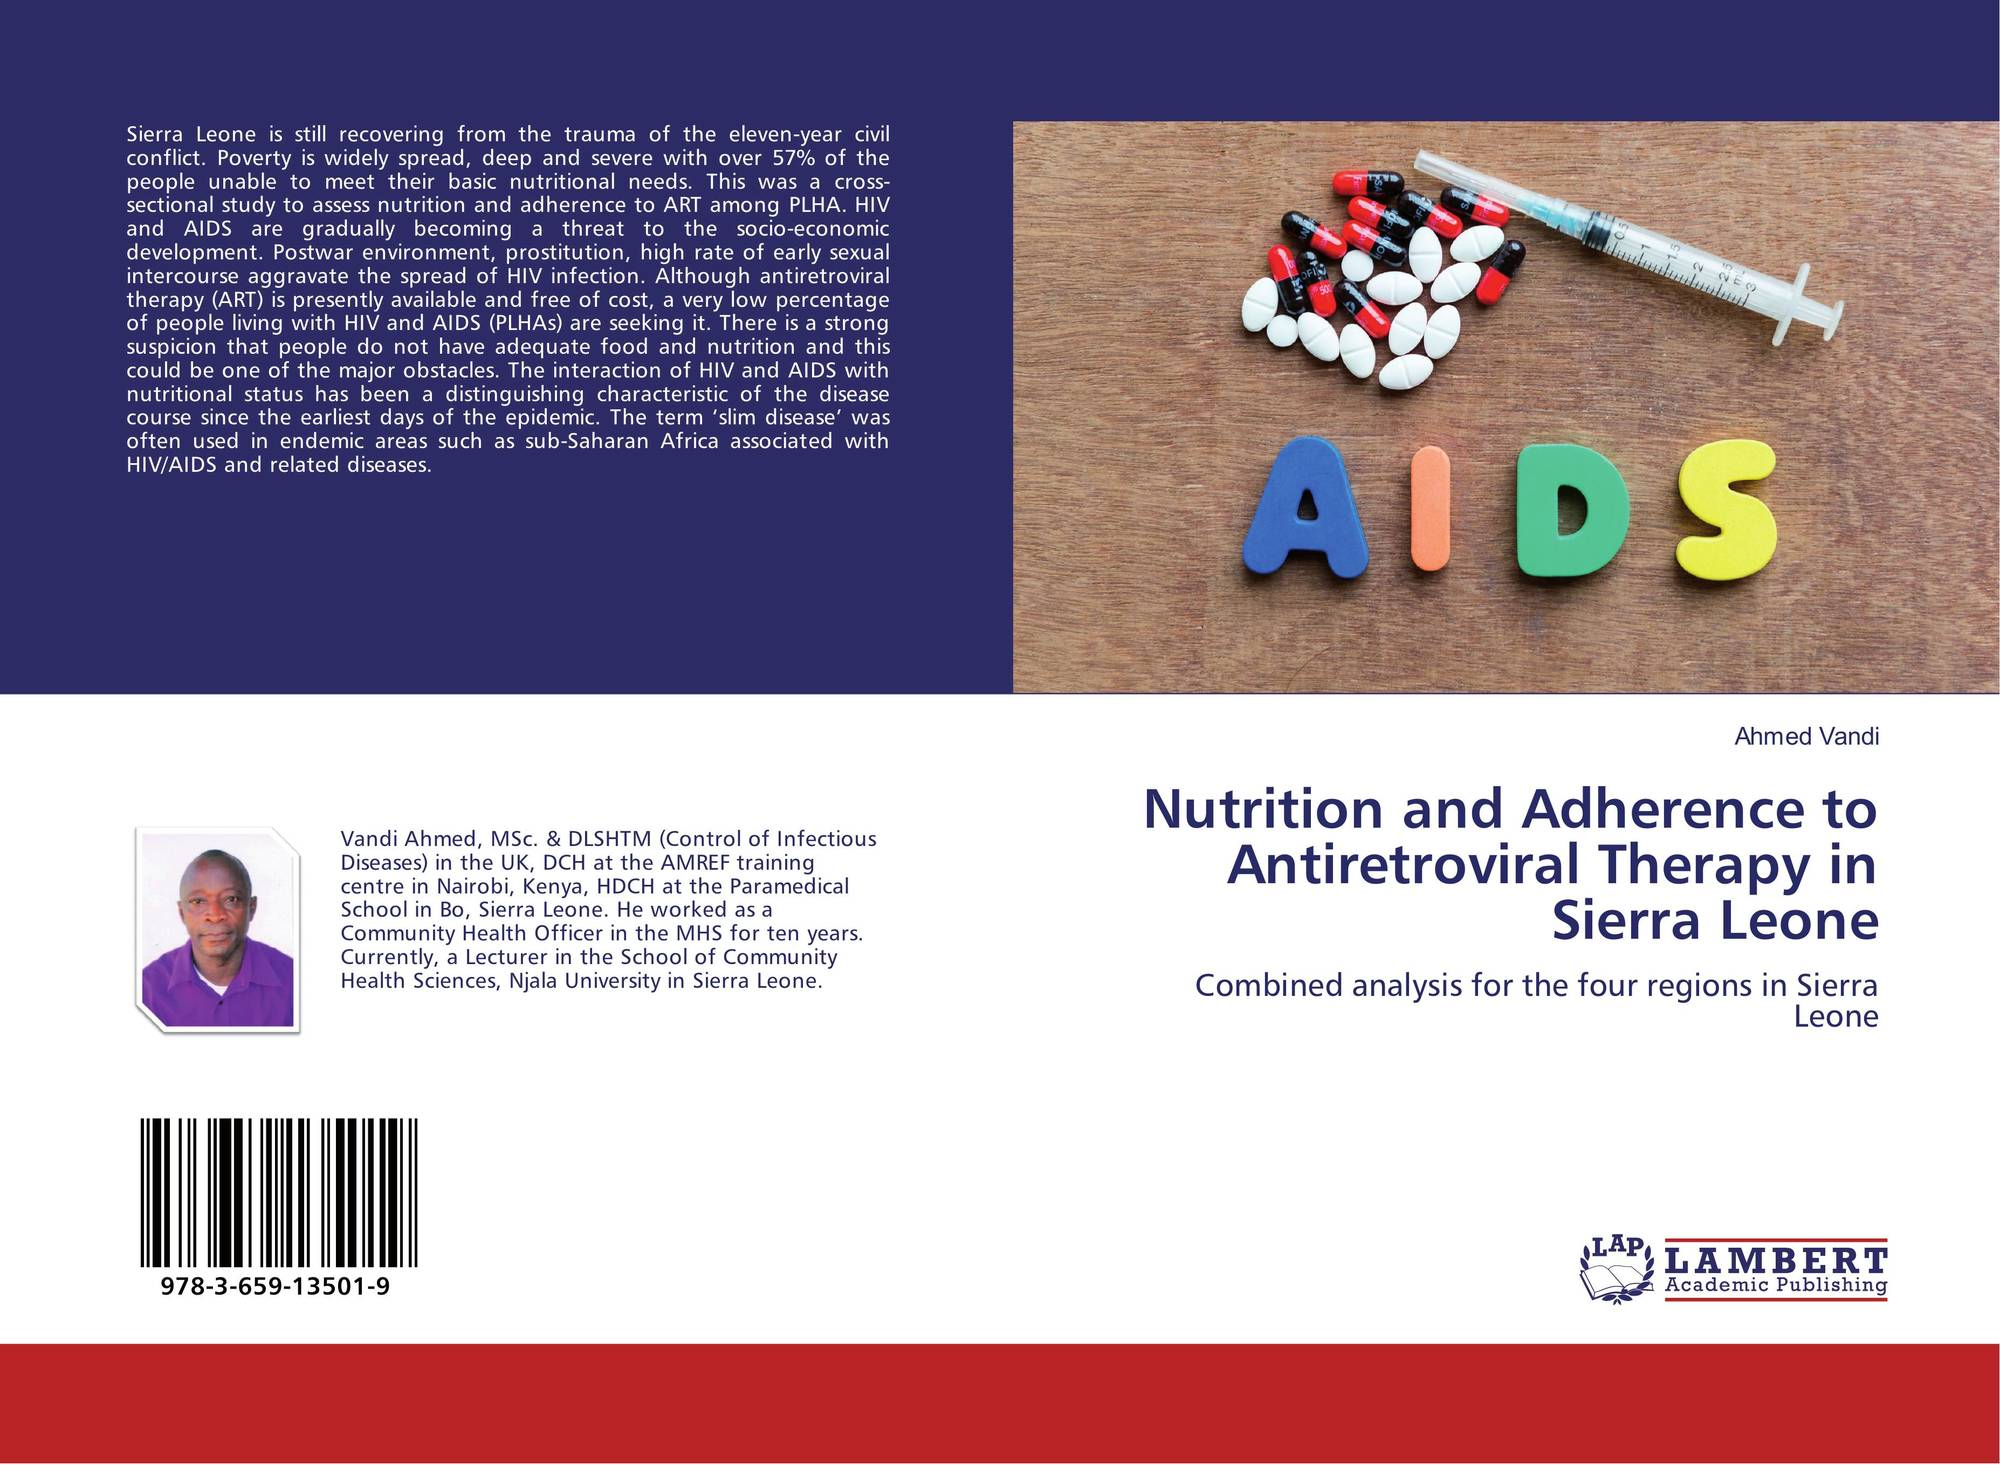 Adherence to antiretroviral therapy for adults